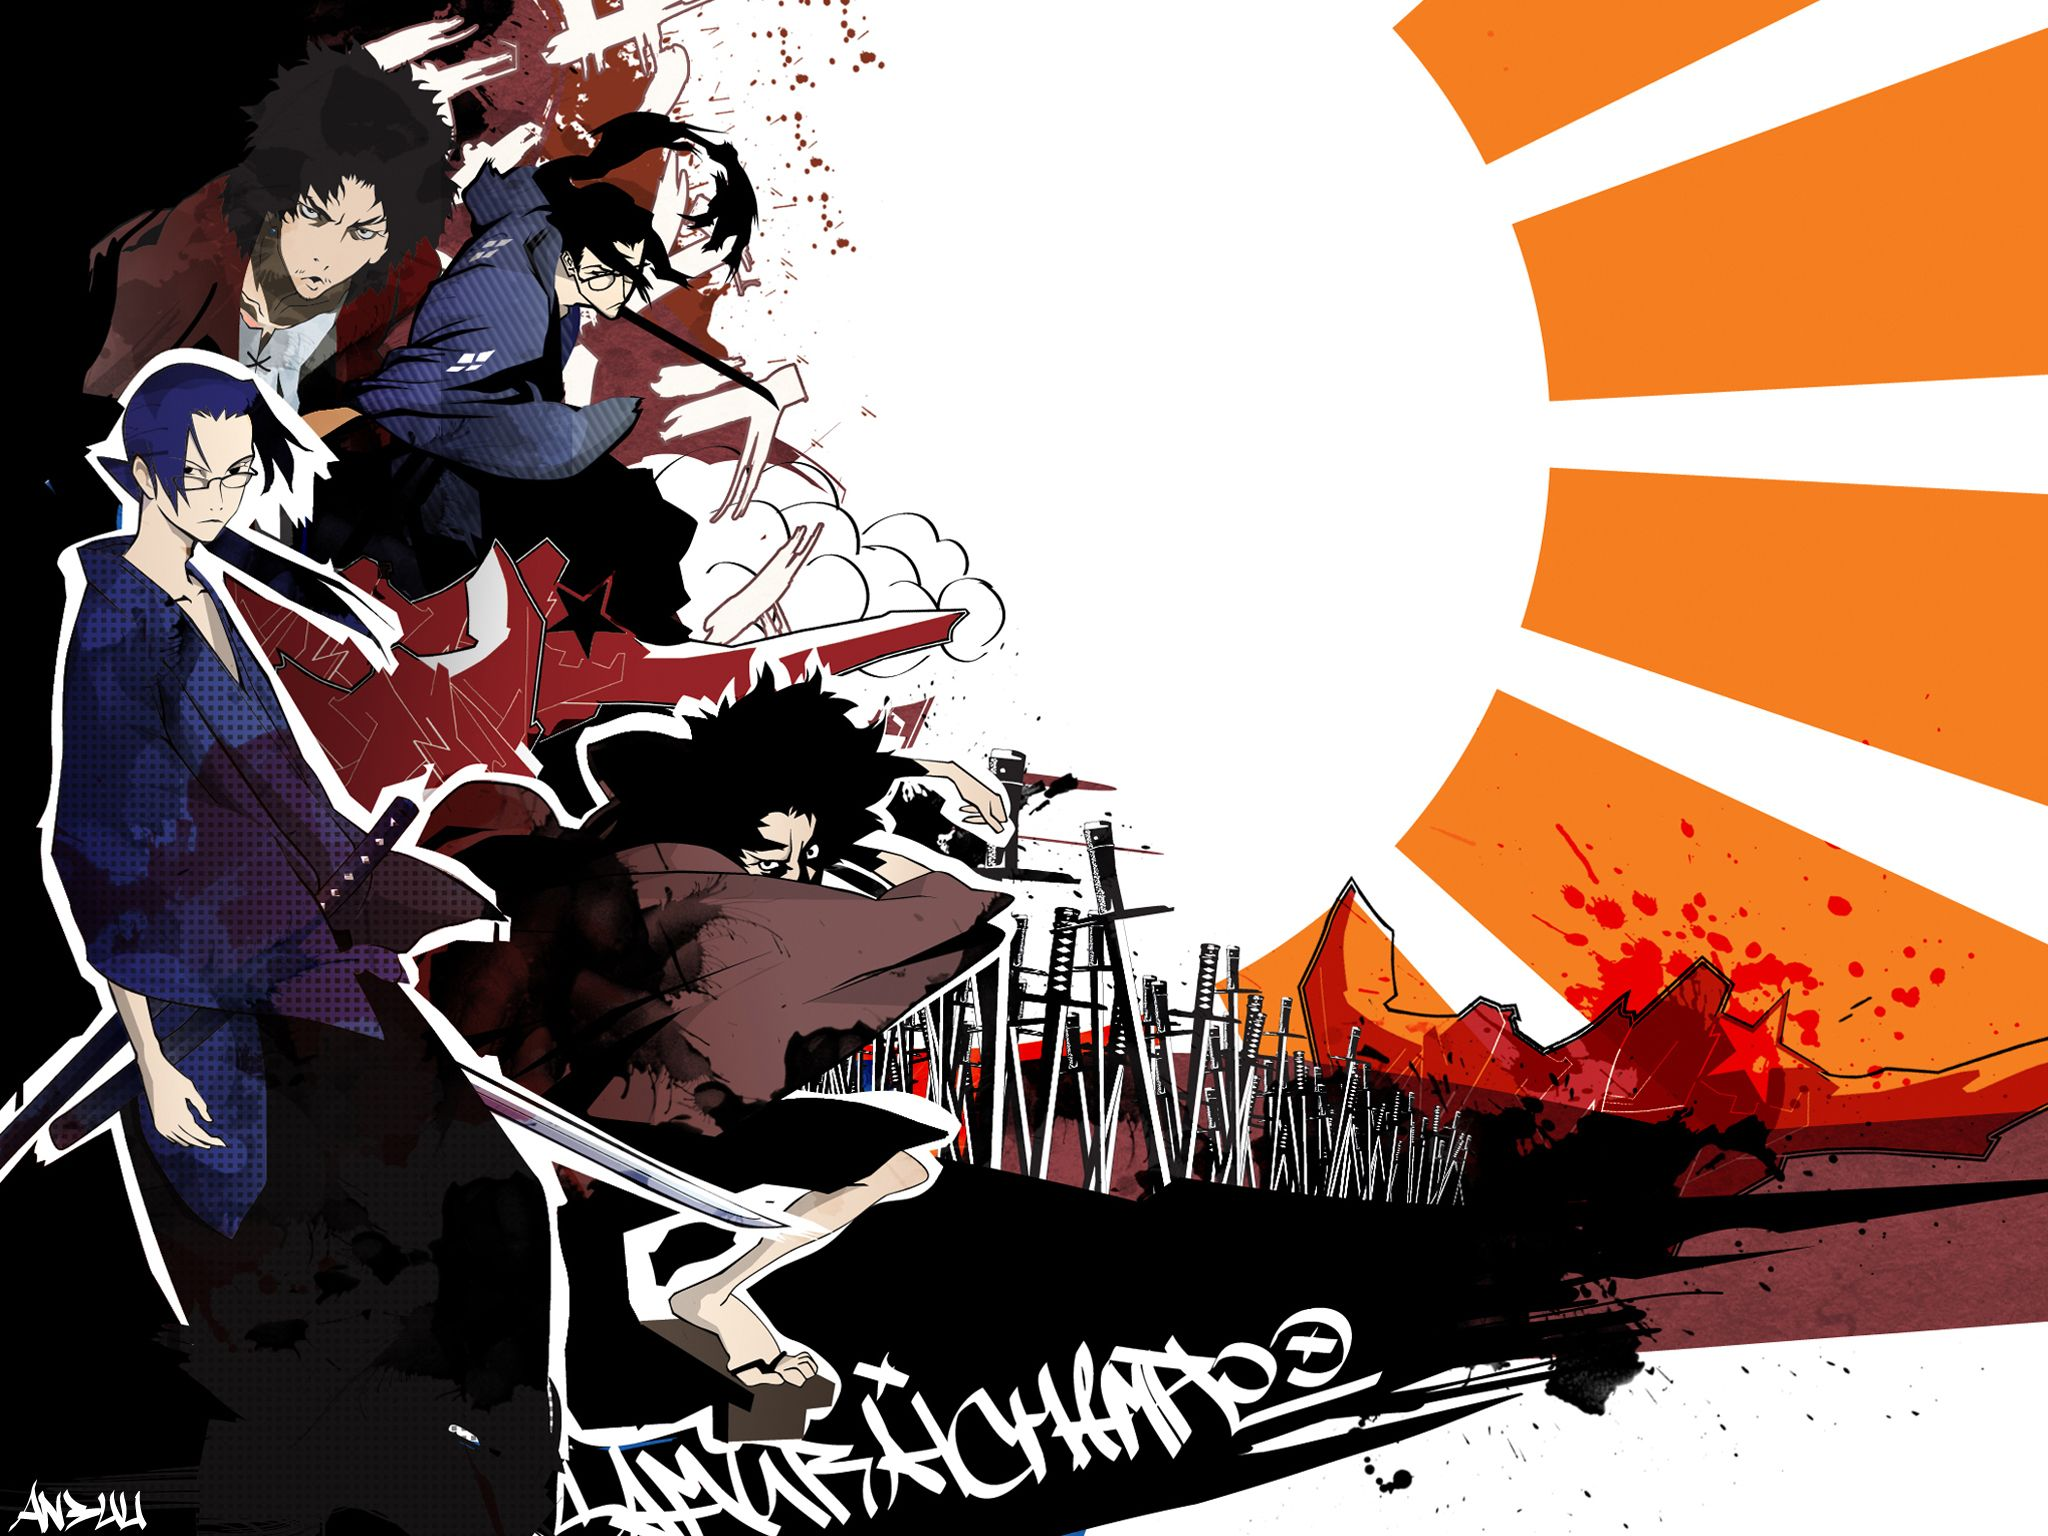 samurai champloo Samurai champloo Samurai Wallpaper backgrounds 2048x1536